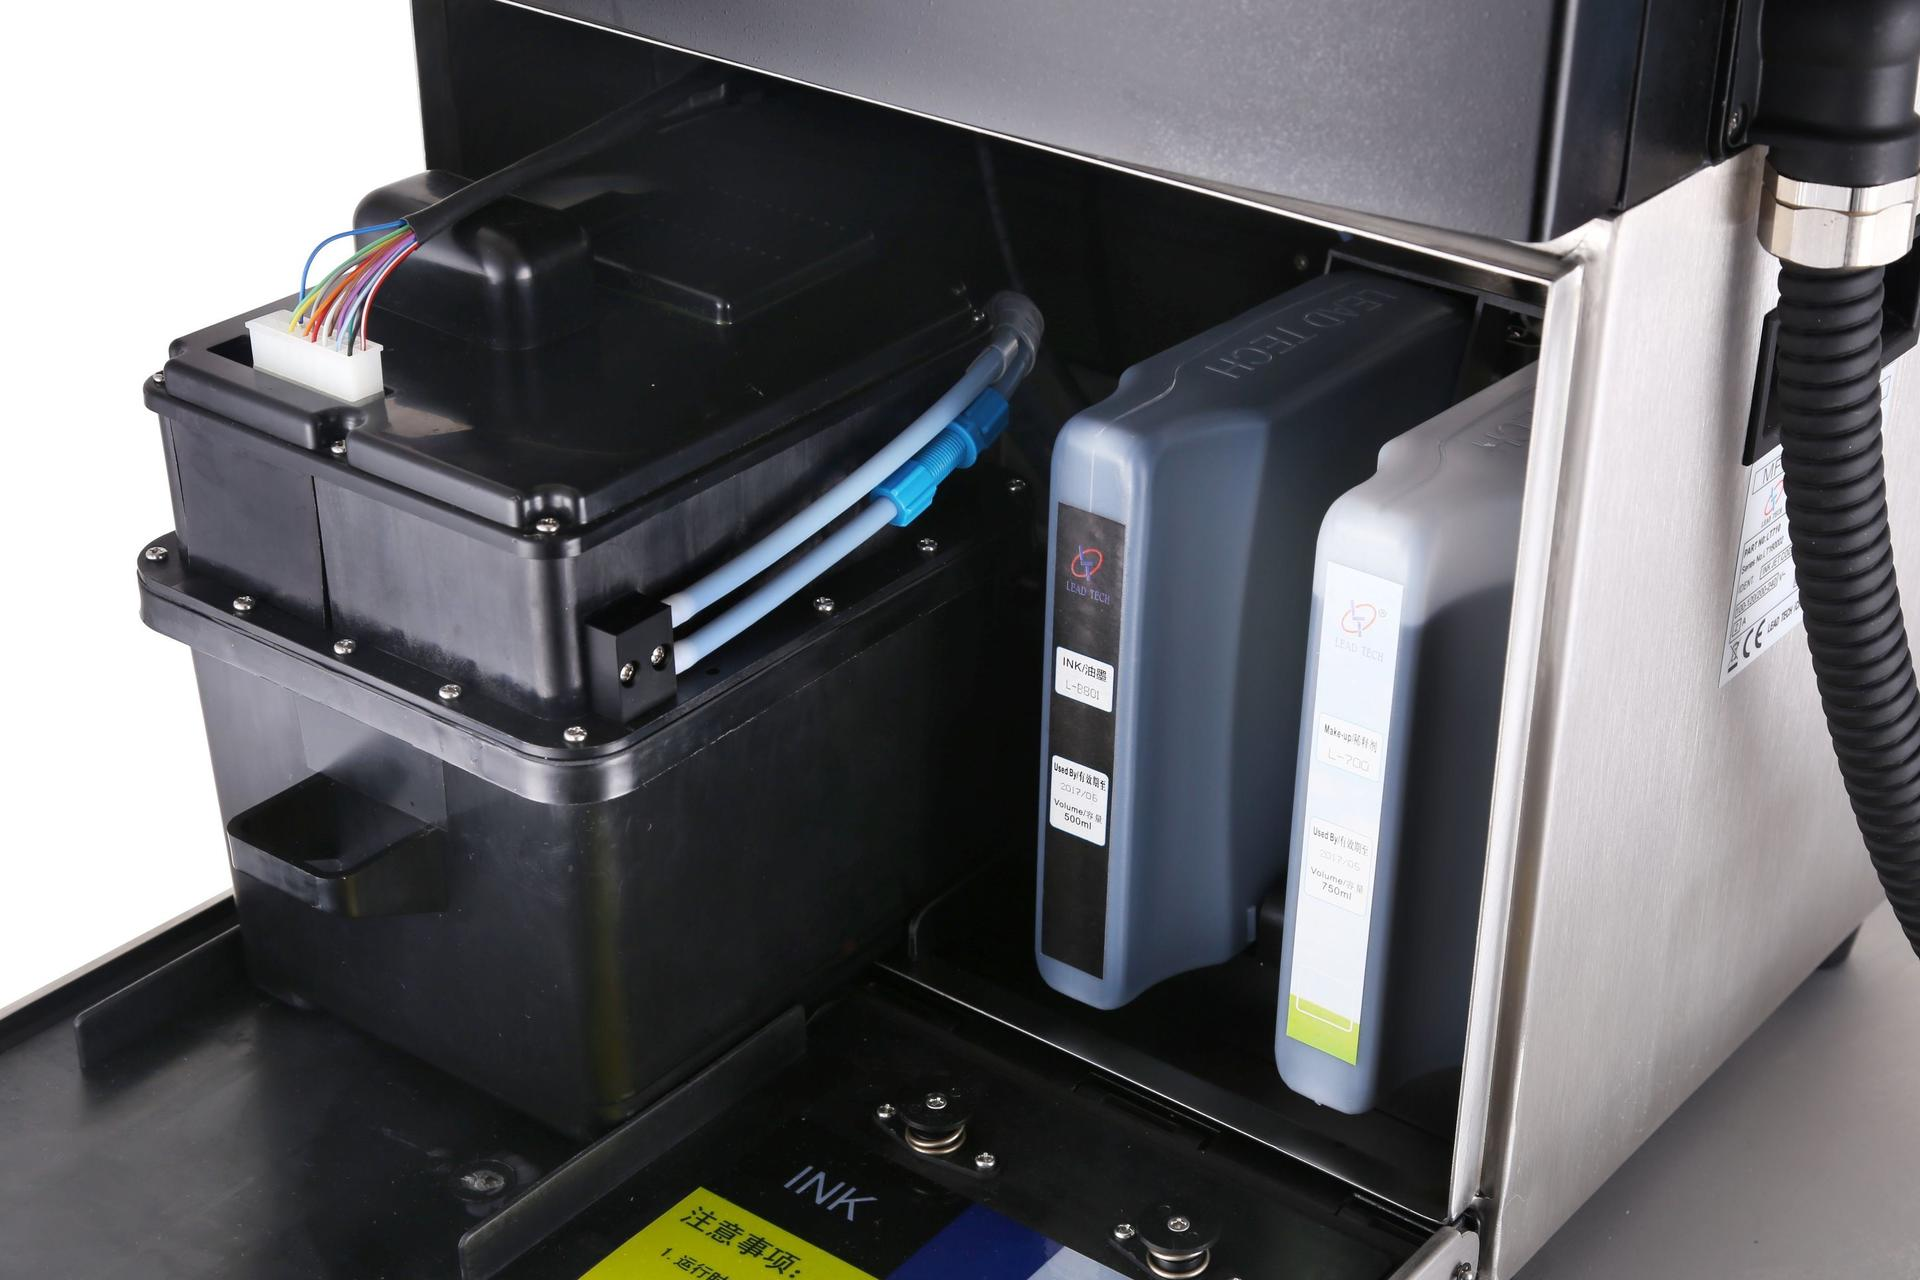 Lead Tech Lt760 Cij Inkjet Printer for 1d Barcode